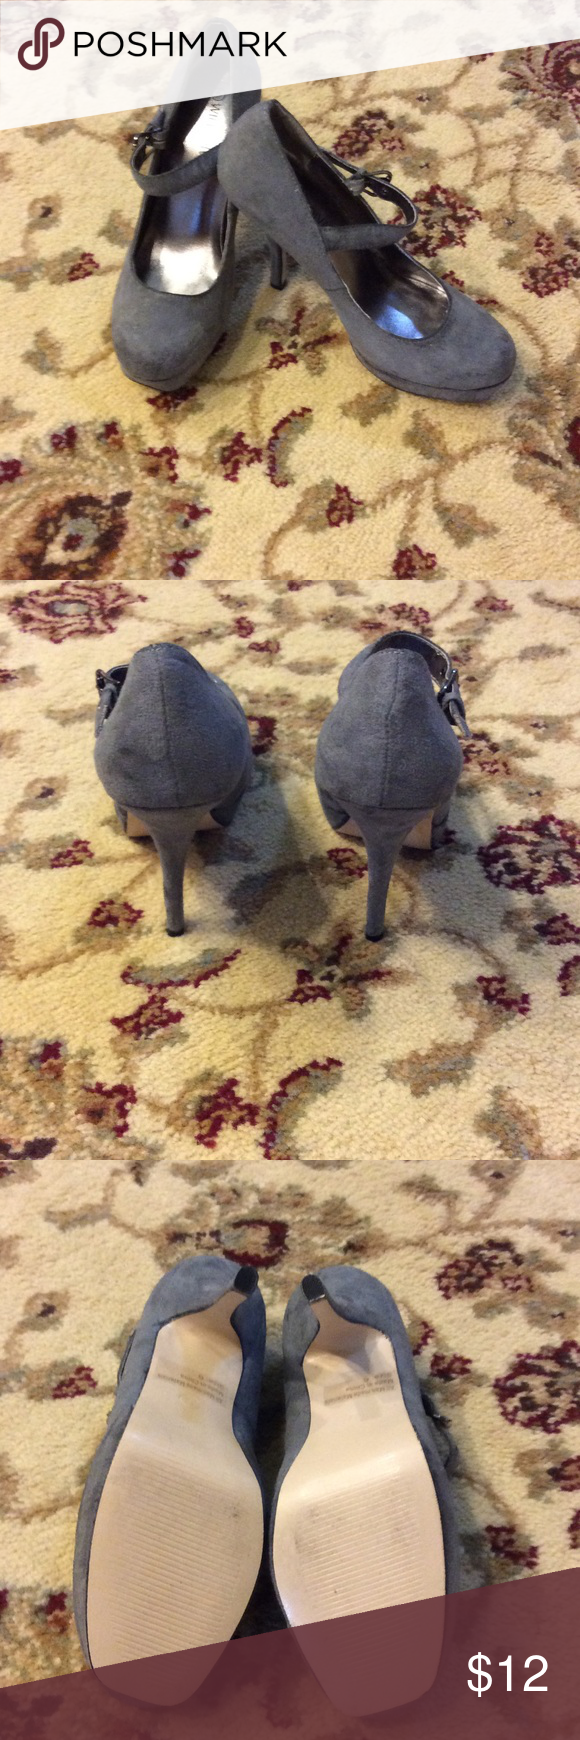 "Darling Gray Faux Suede Platform Heels  👠 Worn only once!  In perfect condition & actually comfy!  Has a 1"" platform in front & a 4 1/2"" spike heel.  Also has 5 grommets on each buckle (however,  there is 1 missing metal ring). Wild Diva Shoes Heels"